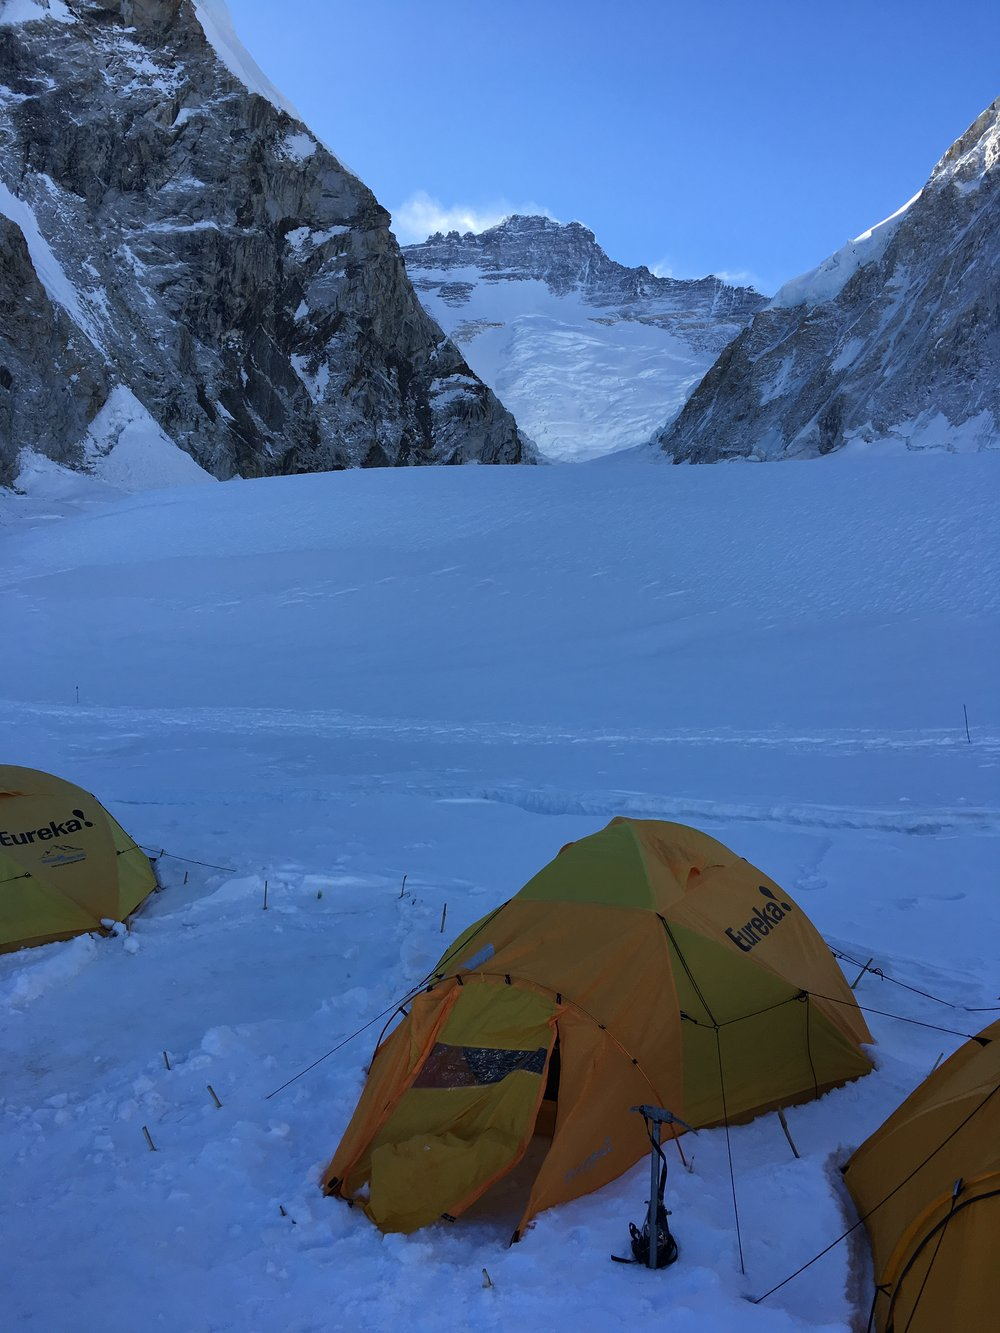 Camp 1 with Lhotse in the background